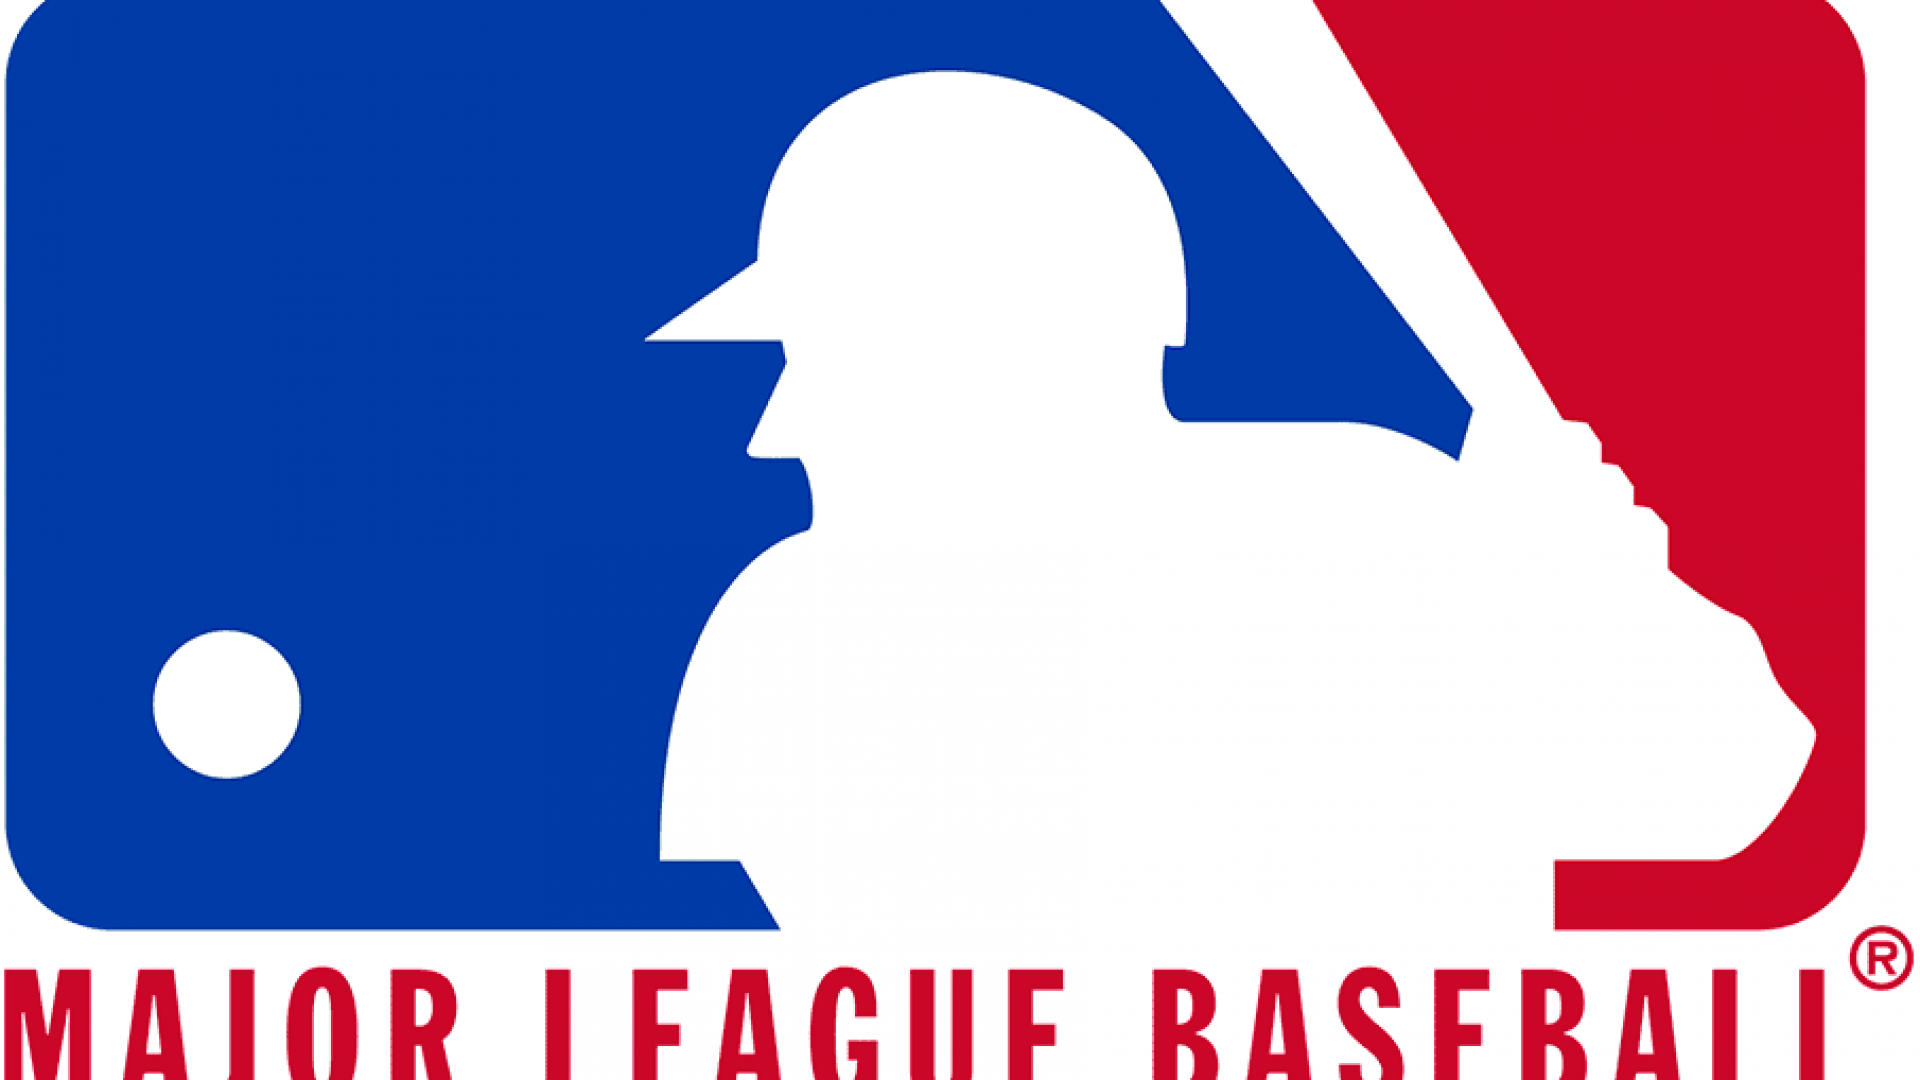 MAJOR LEAGUE BASEBALL: Marijuana testing out